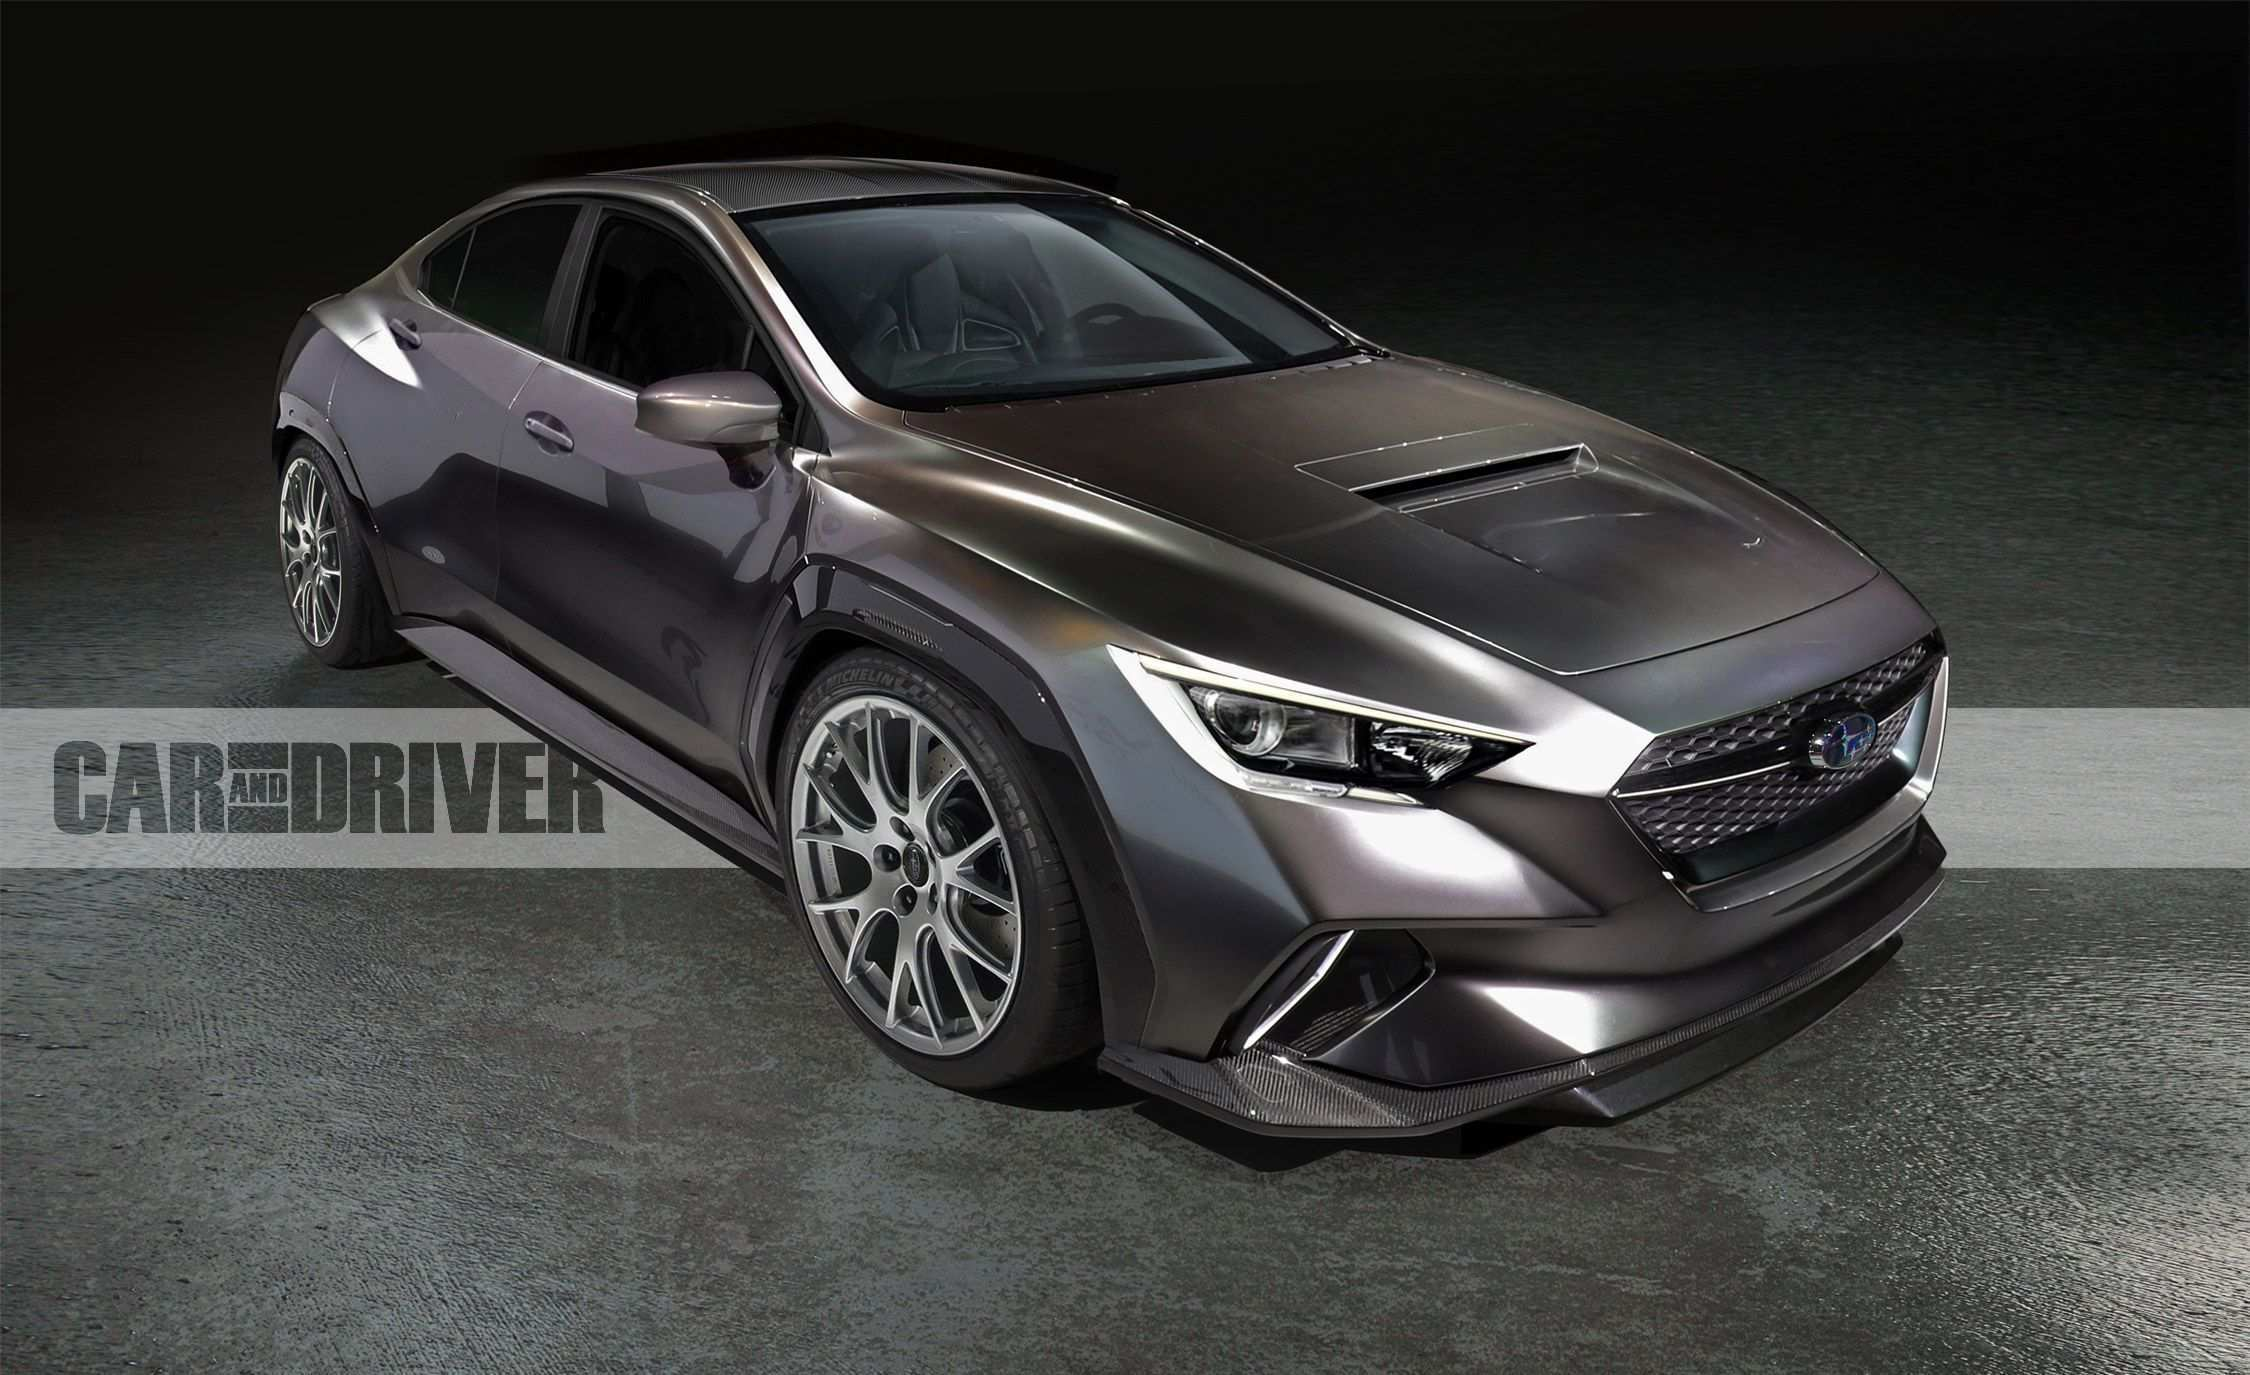 26 New 2020 Subaru Hatch Rumors with 2020 Subaru Hatch